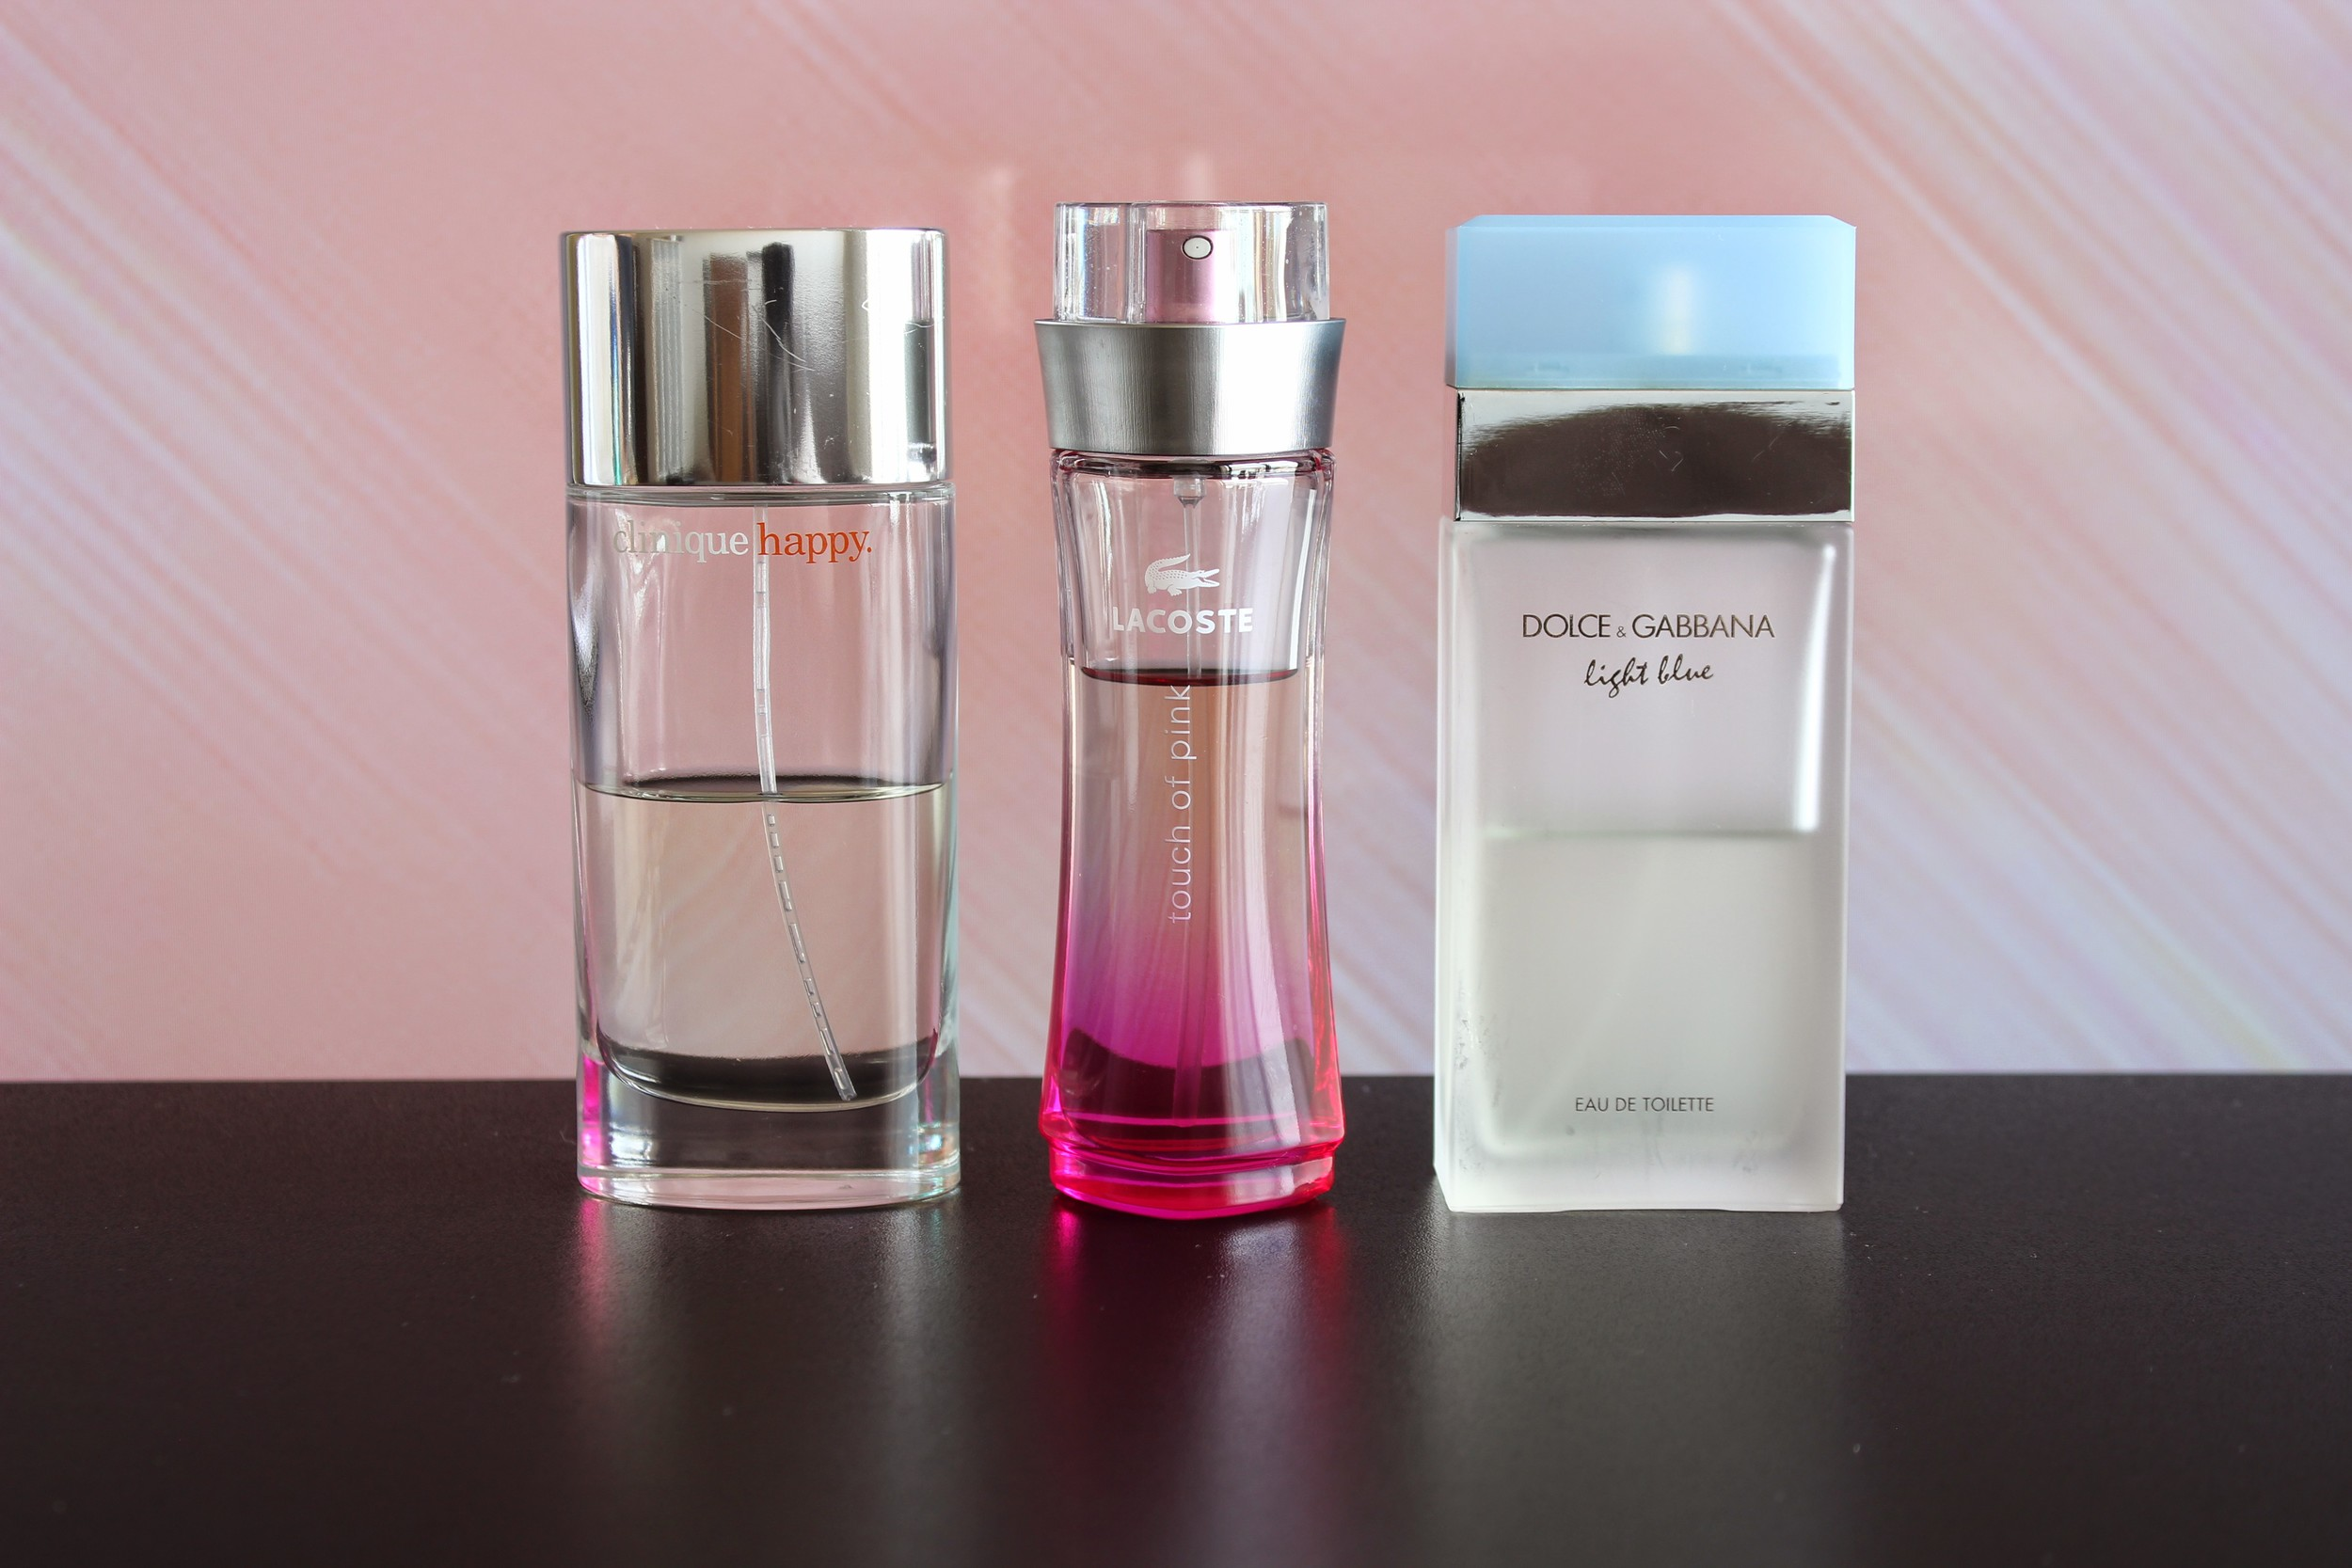 Meus perfumes favoritos - Happy da Clinique - Touch Of Pink da Lacoste e Light Blue da Dolce Gabbana - Foto por Bruno França